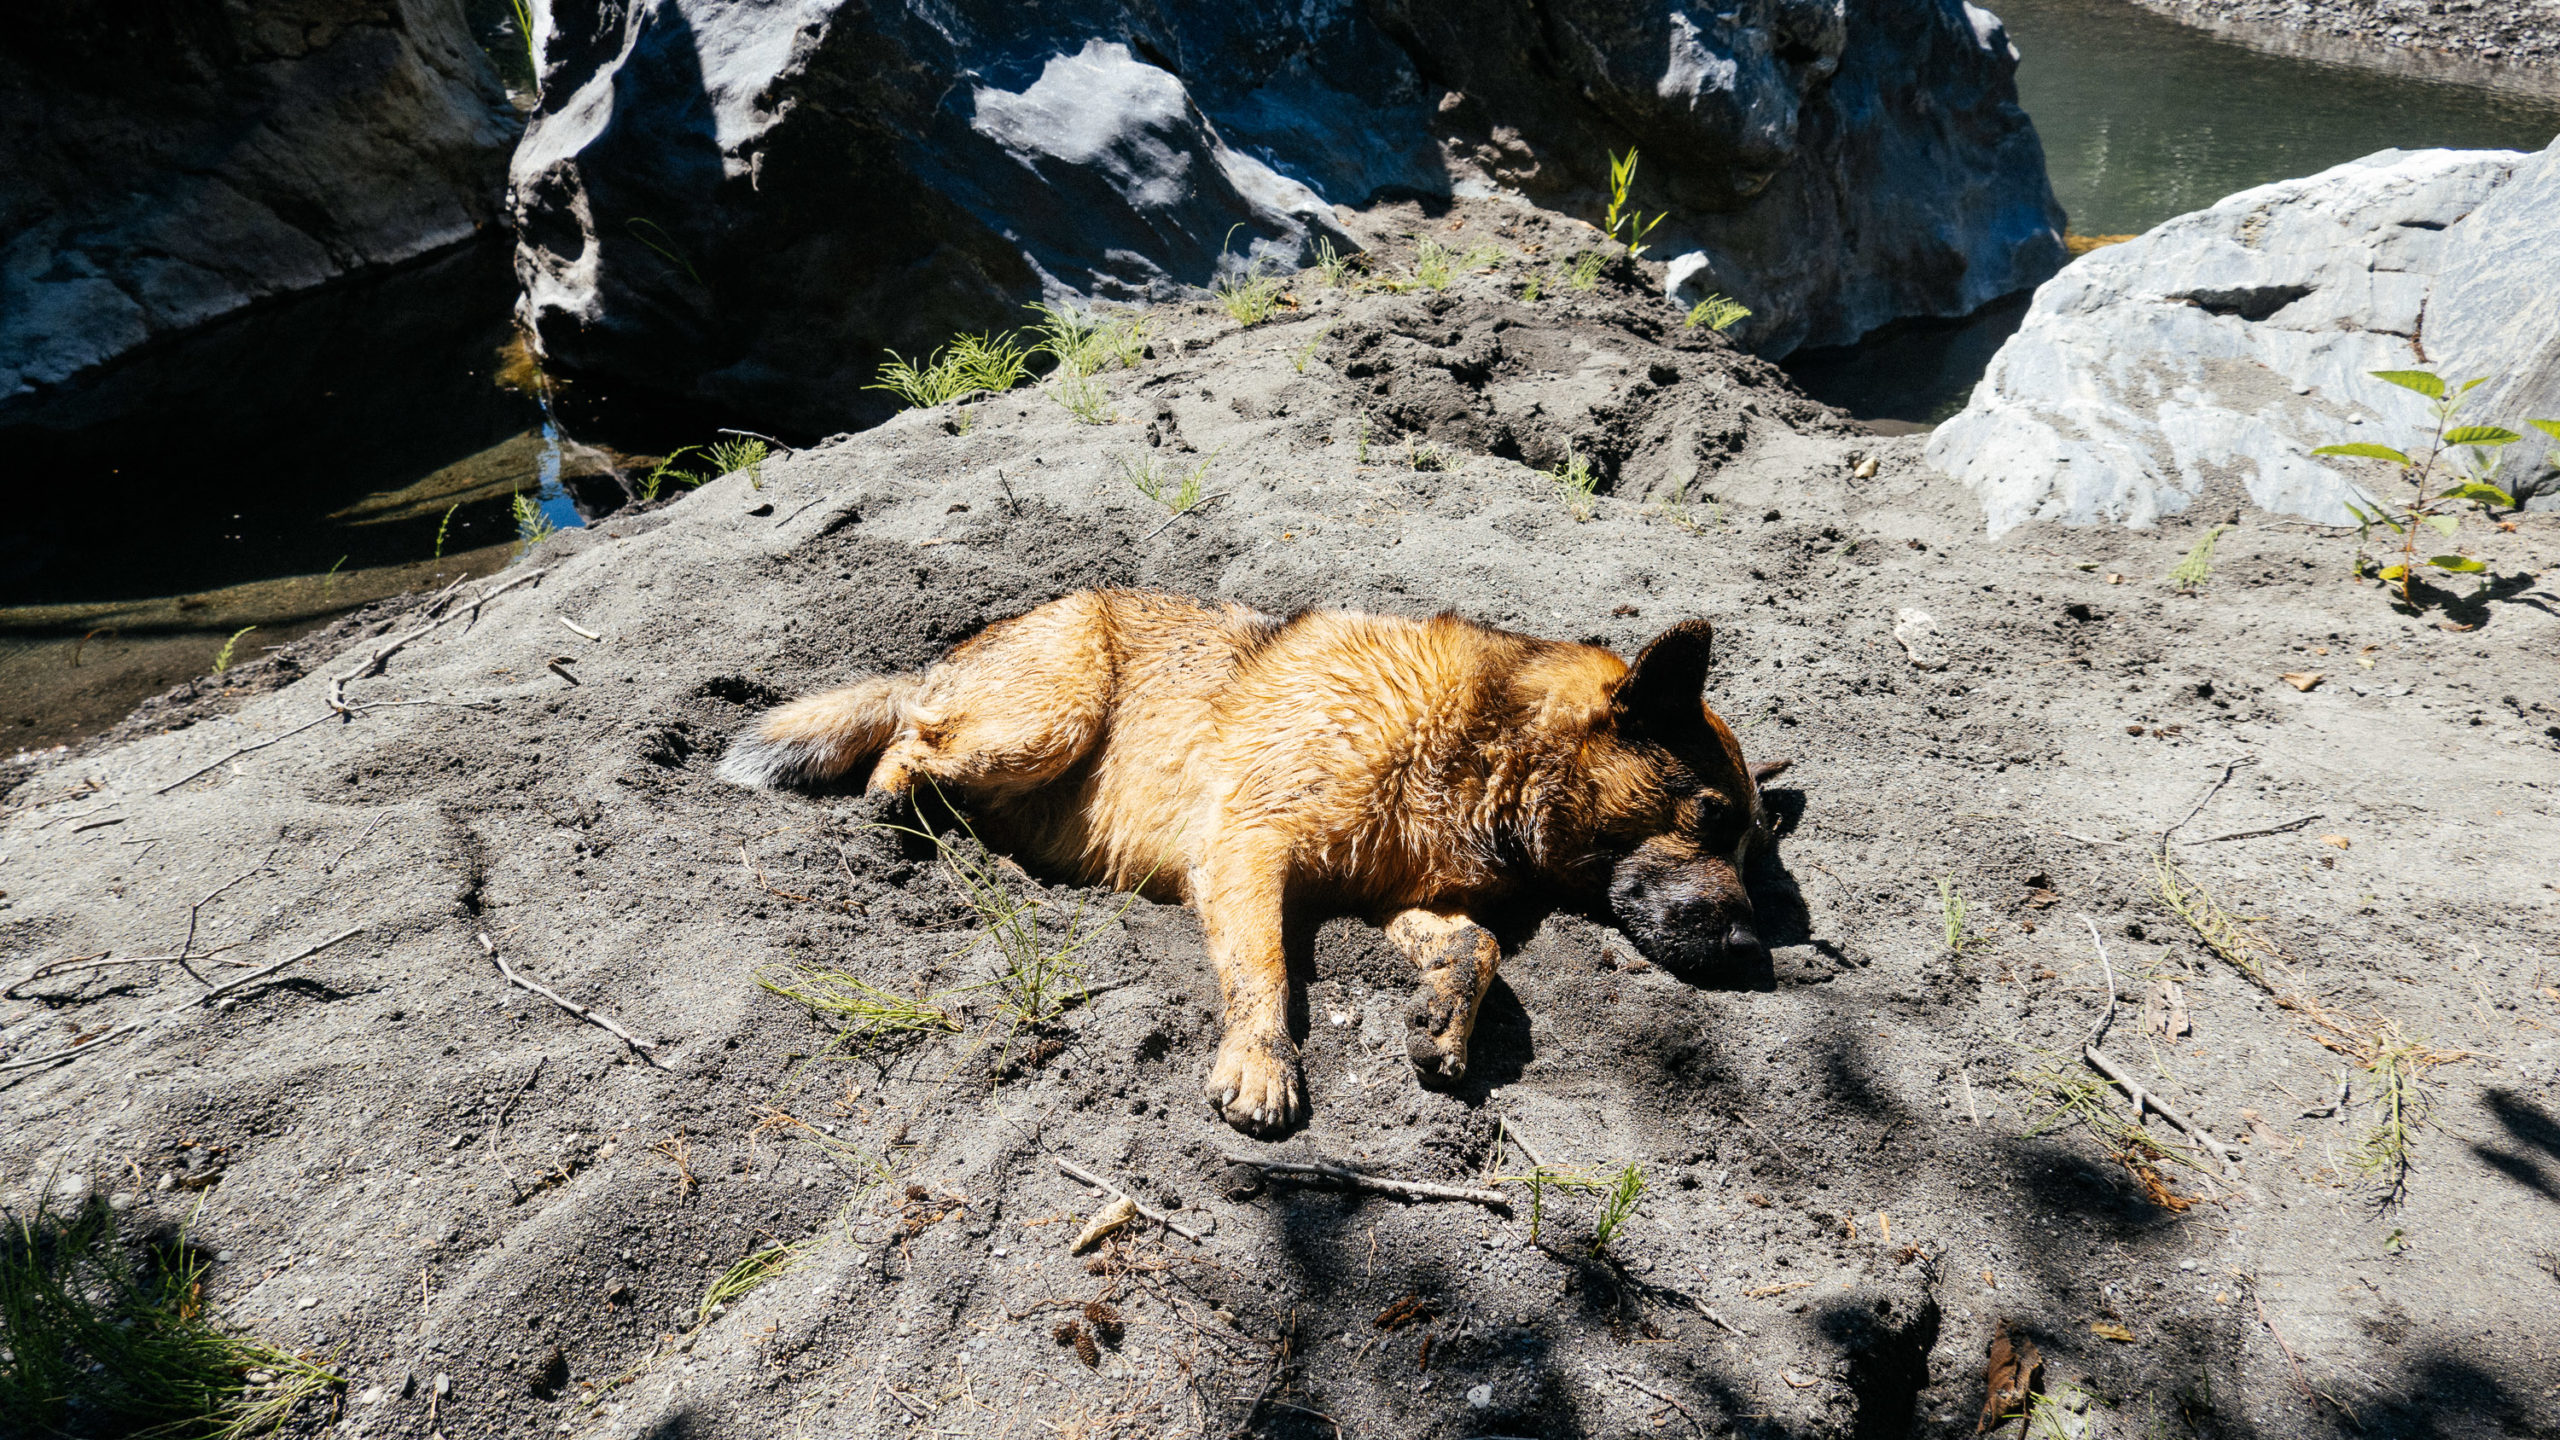 A dog lays in the sand at the side of a creek